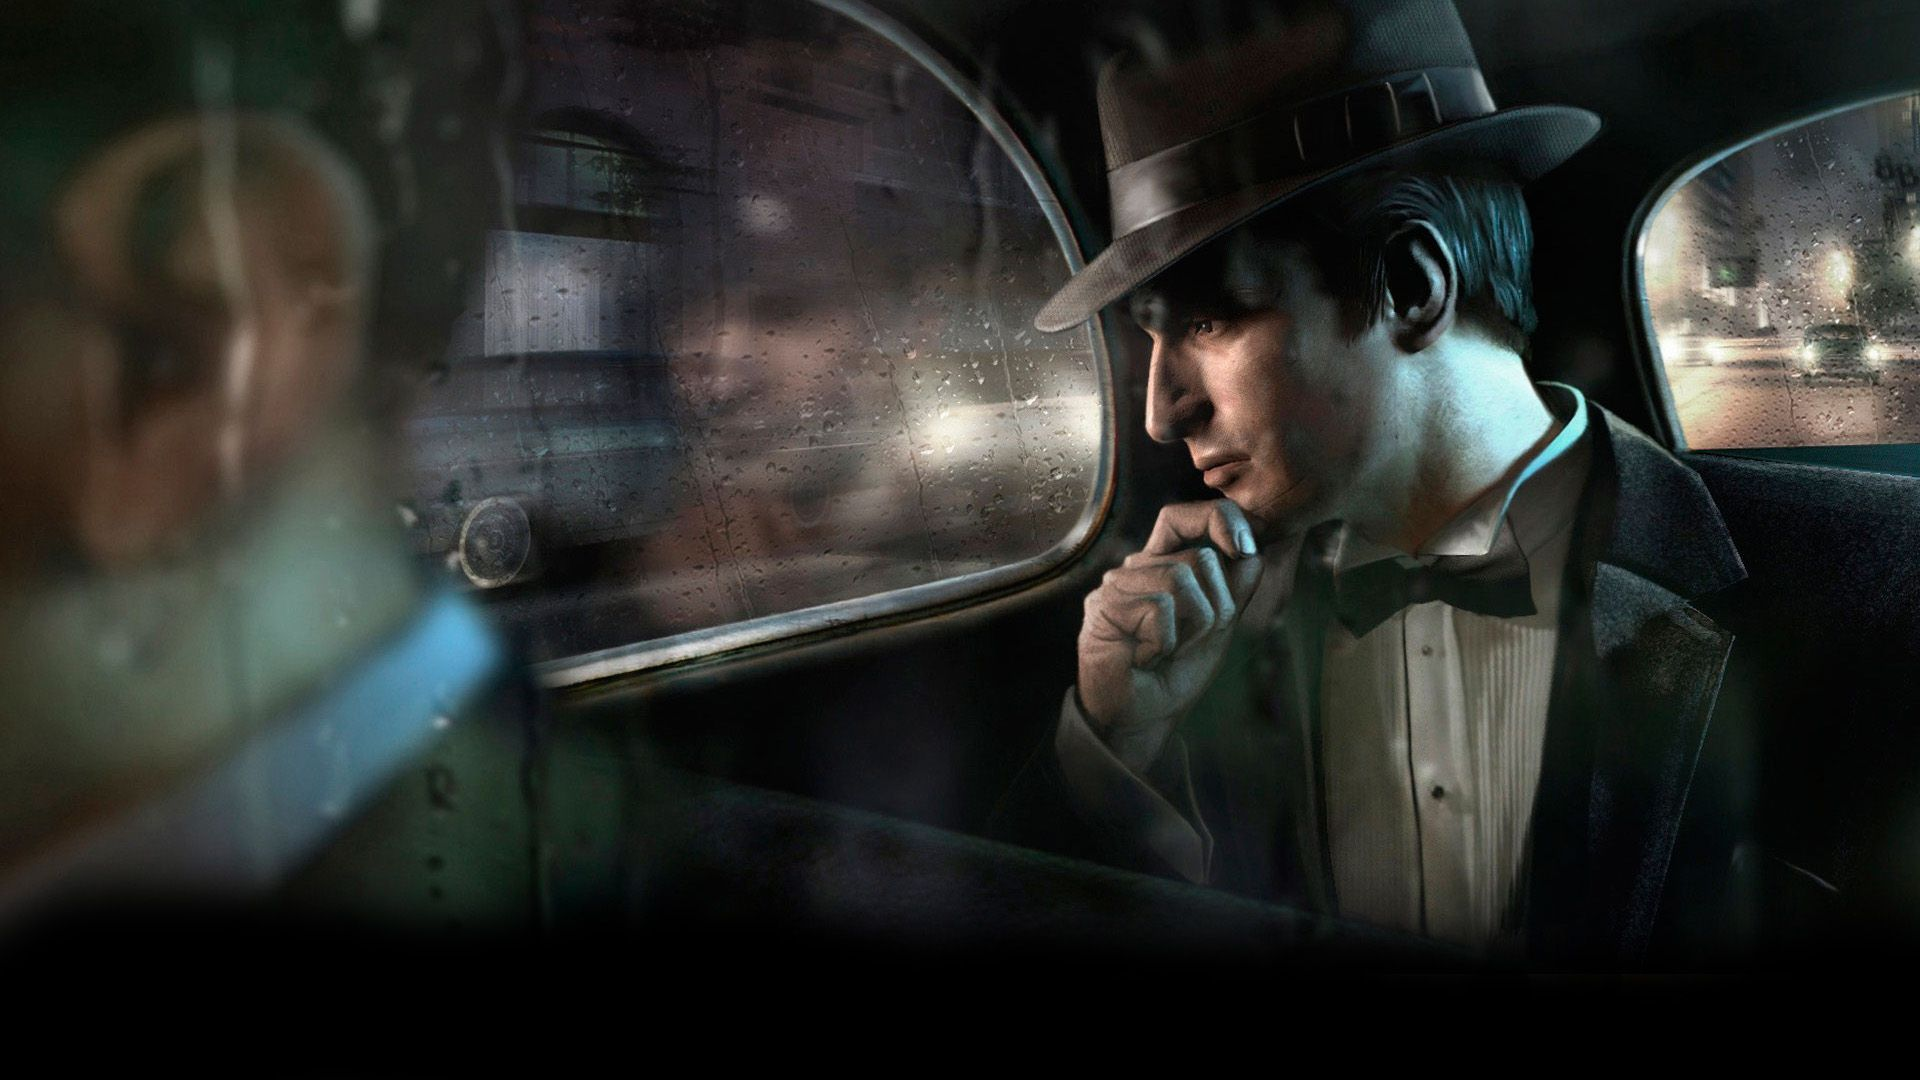 mafia-2-pc-steam-cd-key-satin-al-durmaplay.jpg